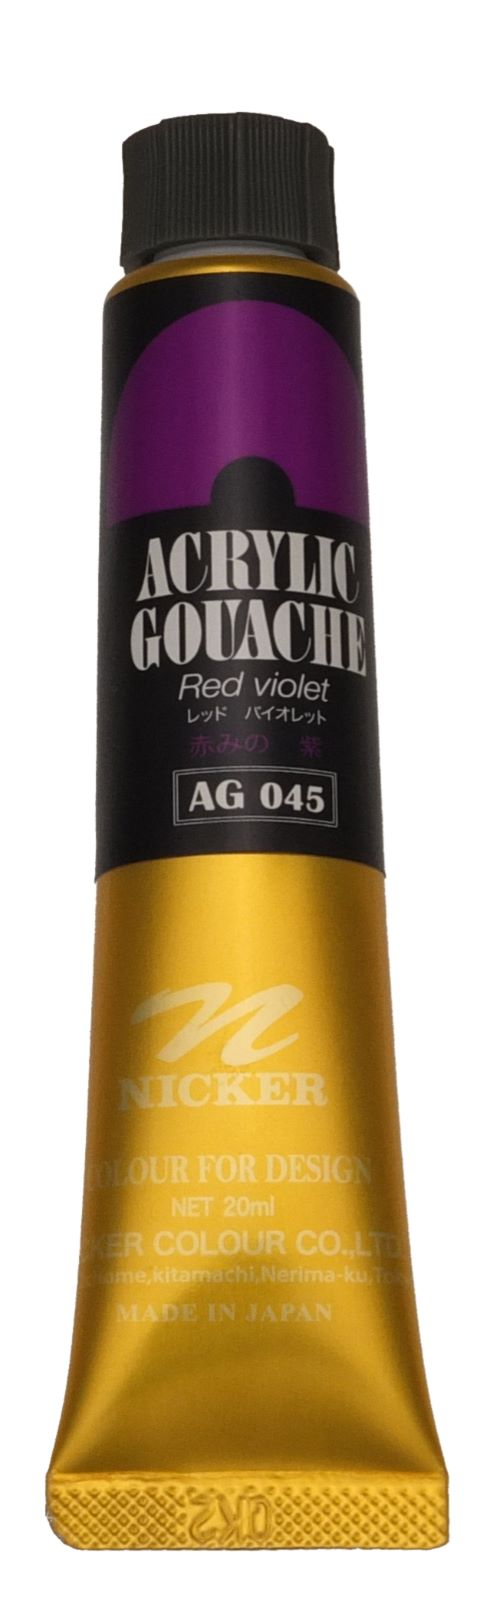 <Discontinued> ACRYLIC GOUACHE 20ml AG045 RED VIOLET